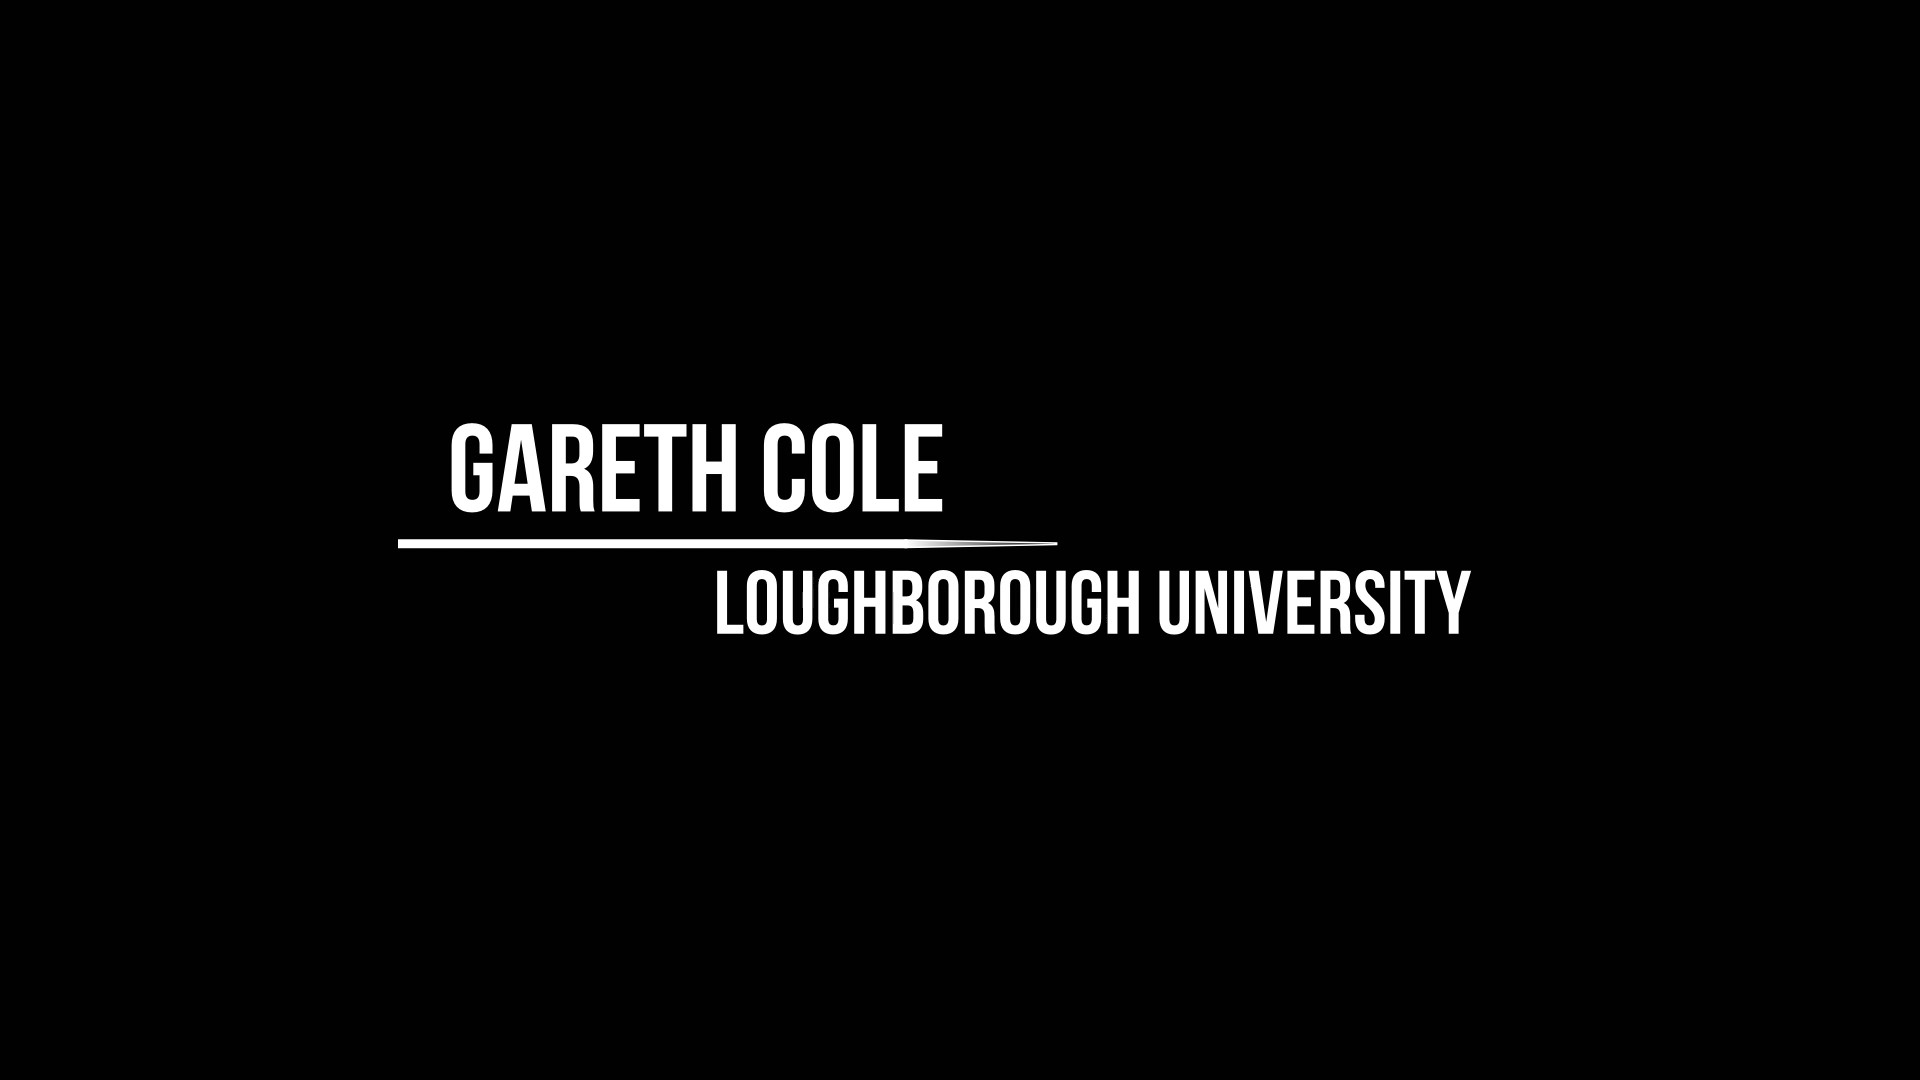 Workshop 1 – Gareth Cole – Research data & the challenges of accessibility & openness